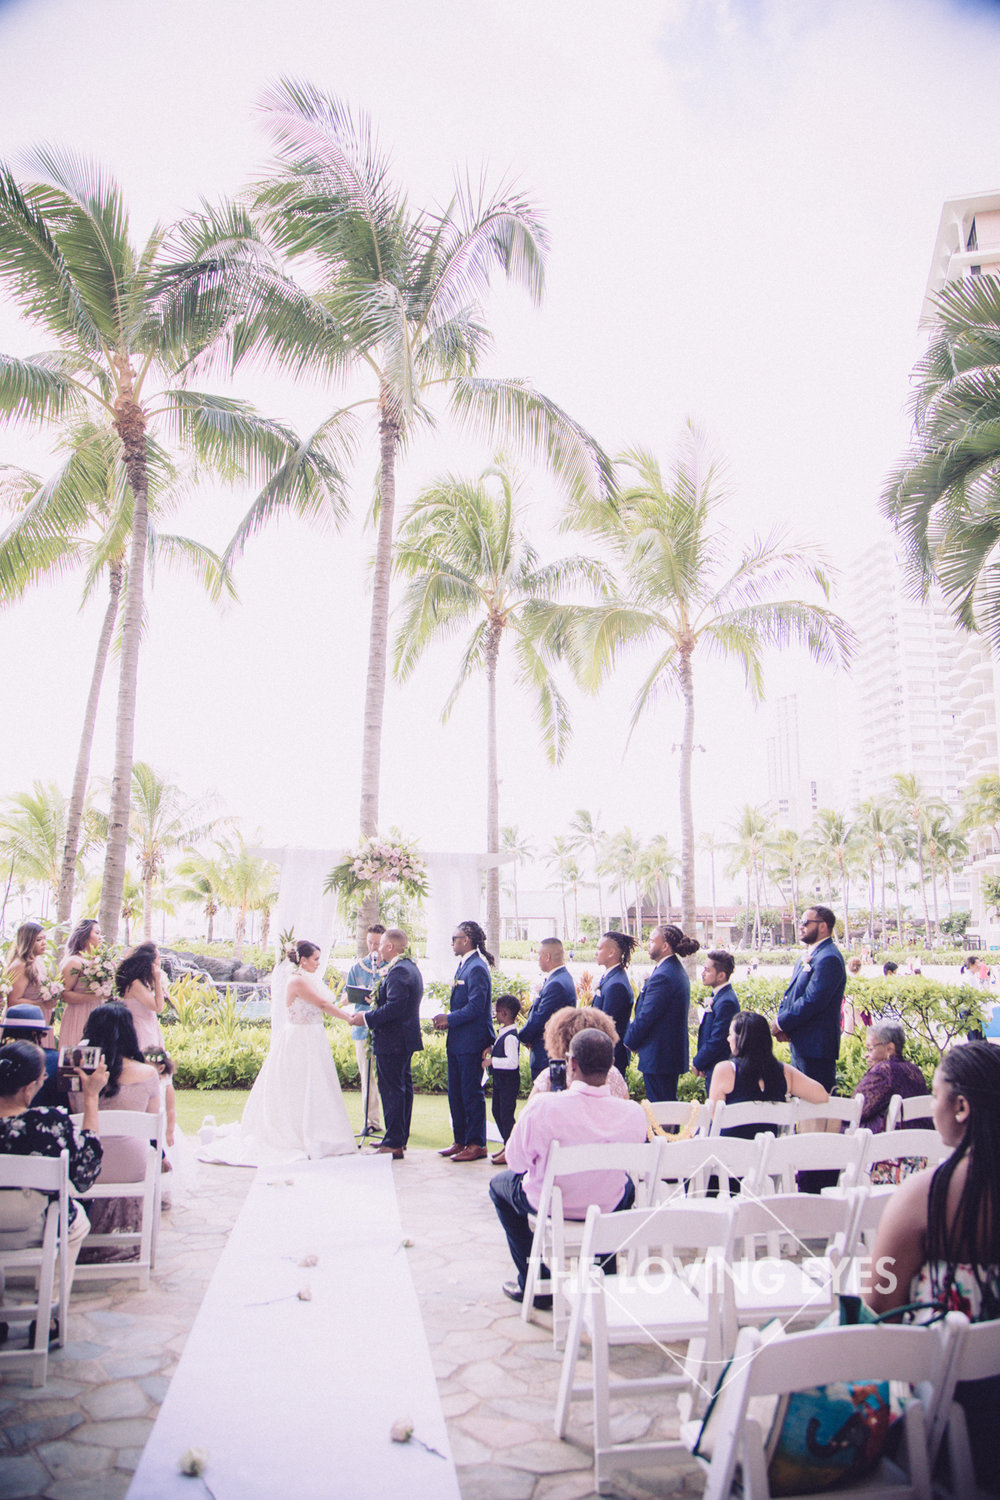 Bride and Groom during wedding ceremony at Hilton Hawaiian Village Rainbow Suite in Waikiki